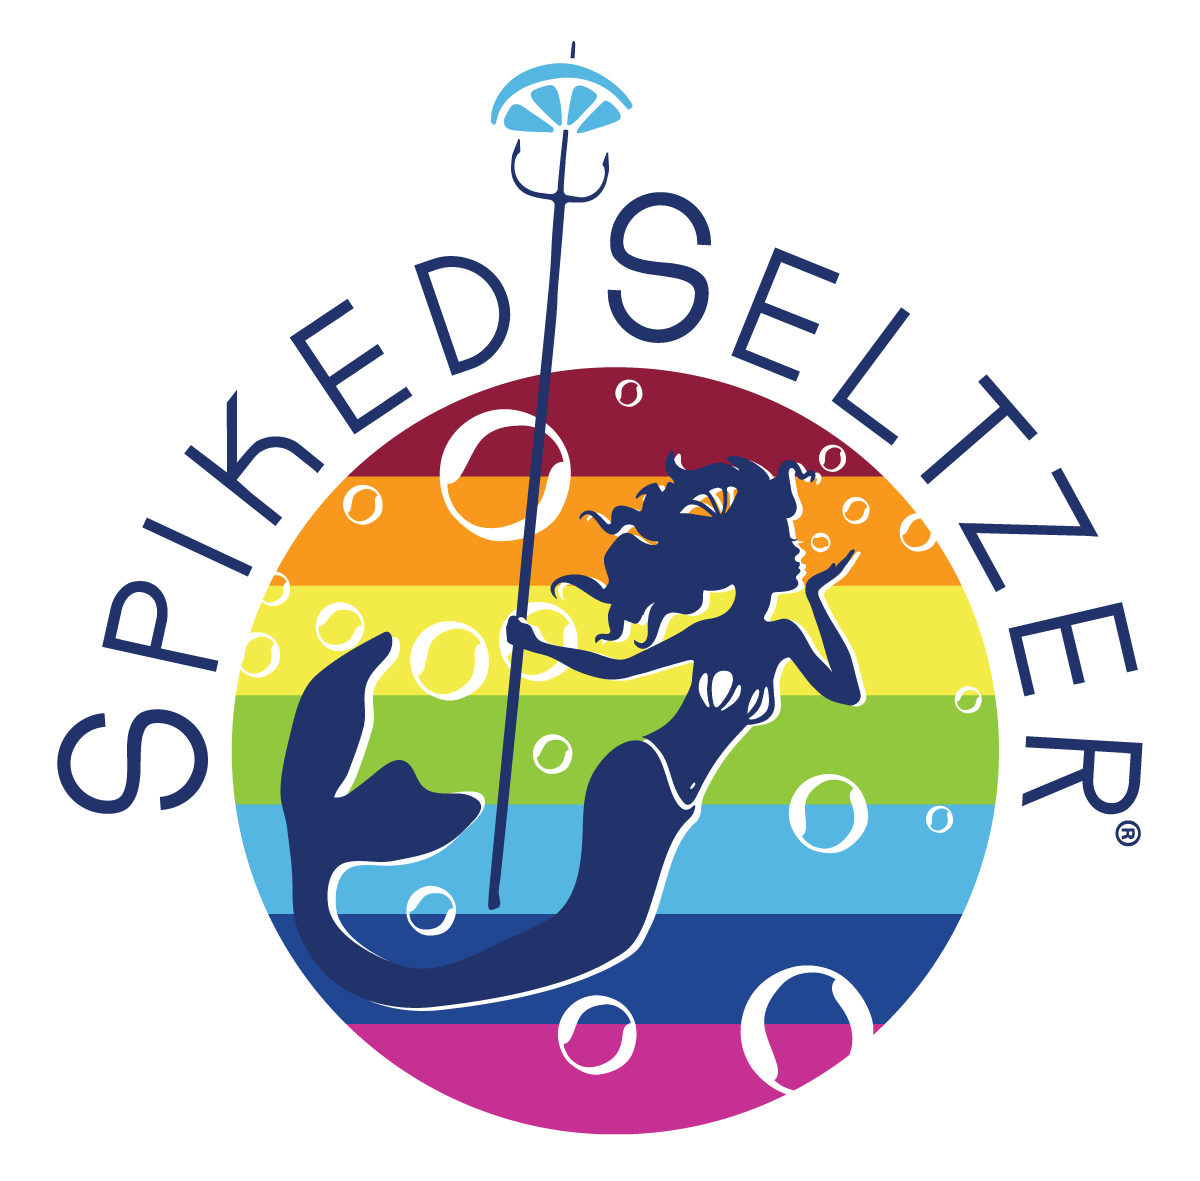 Spikedseltzer_official_rainbowlogo.png